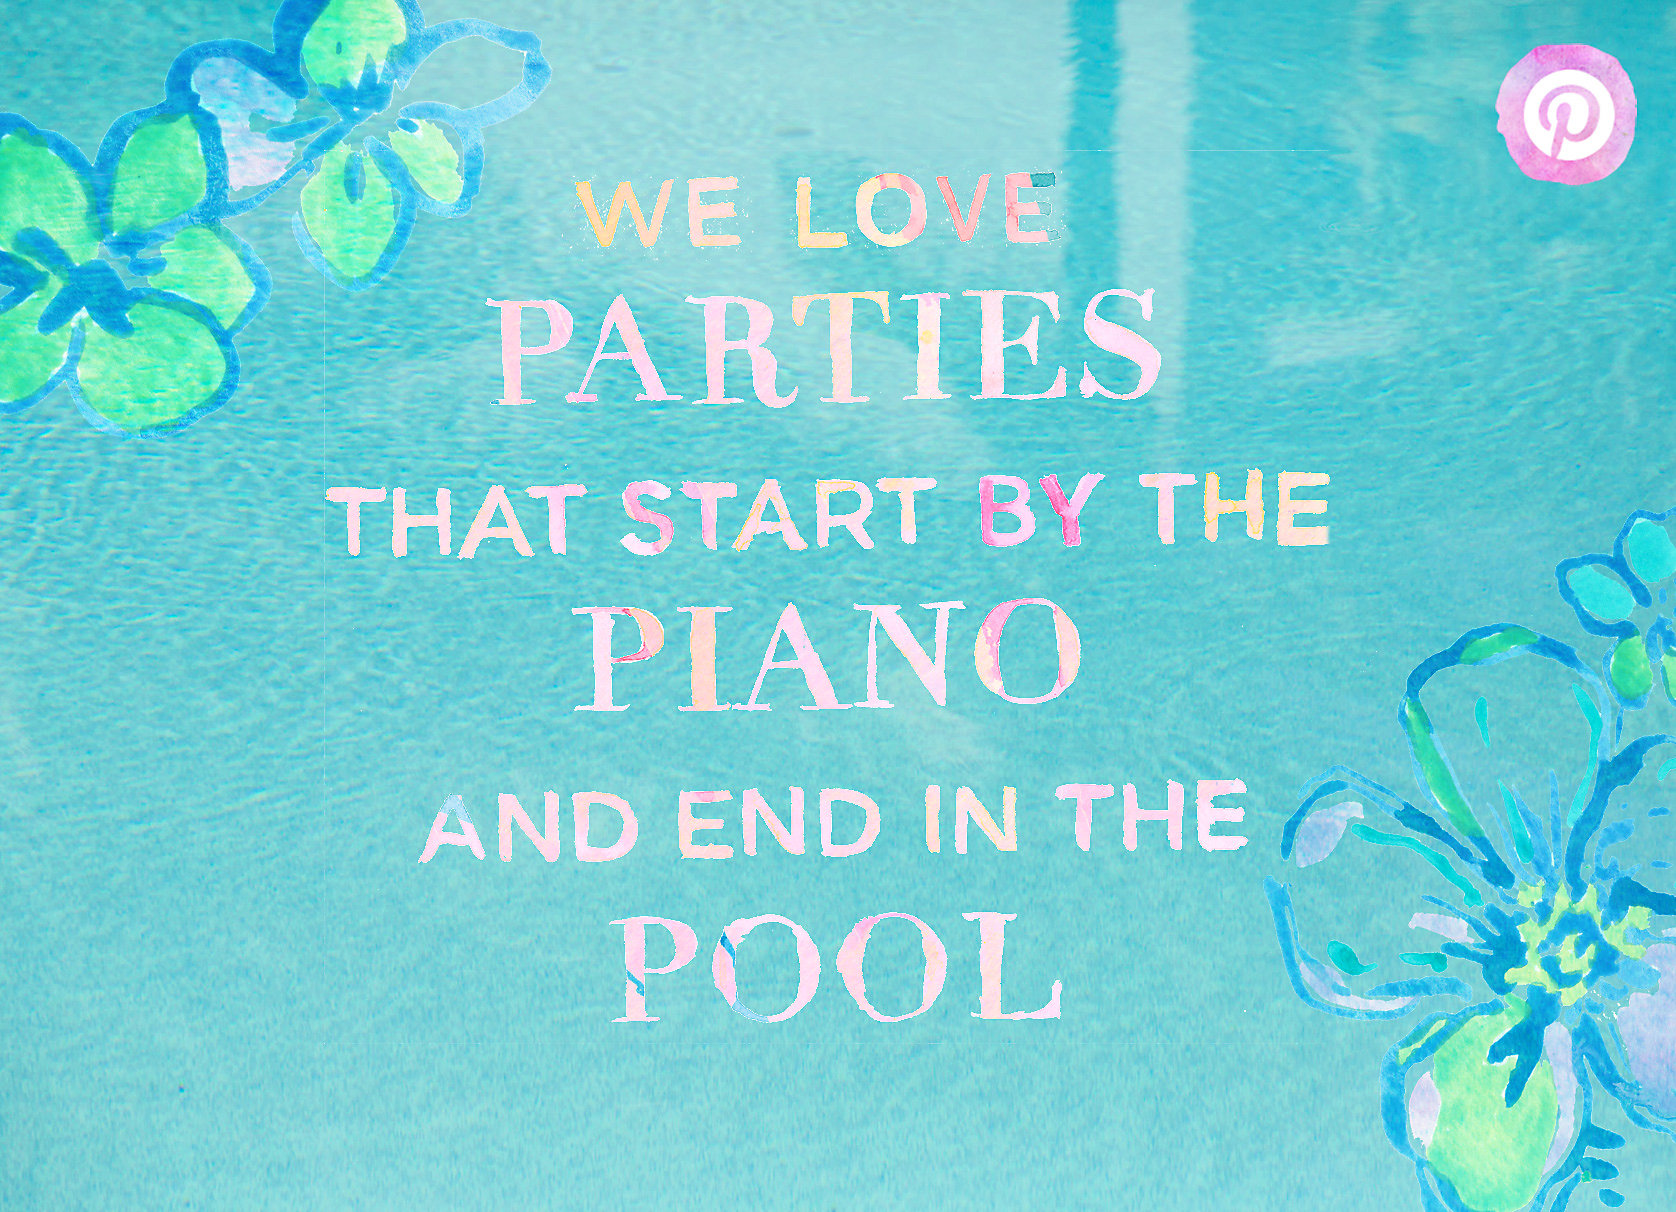 Lilly Pulitzer quote about parties that start by the piano and end by the pool